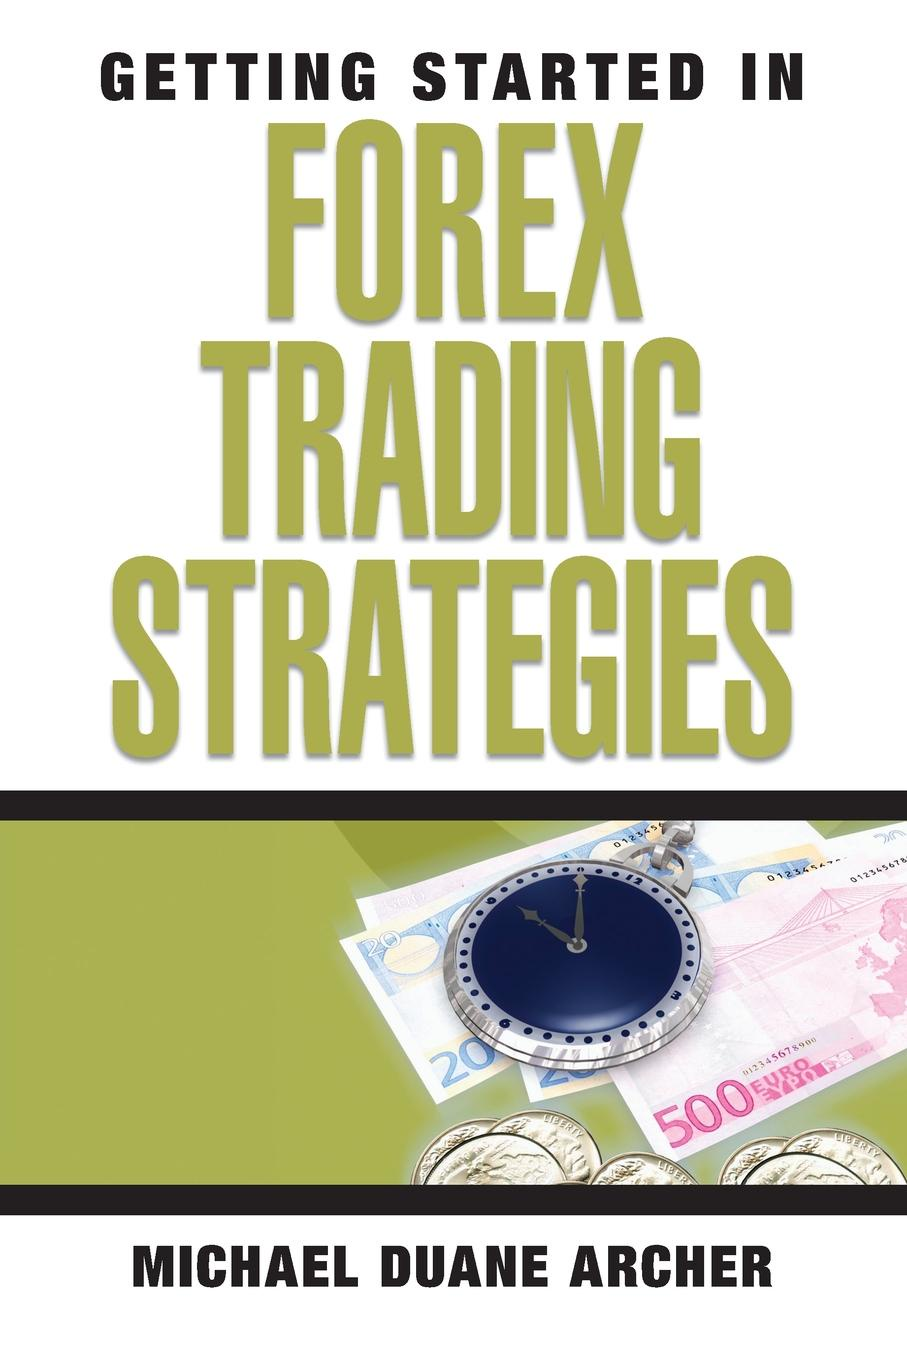 Archer GSI Forex Trading michael archer d getting started in forex trading strategies